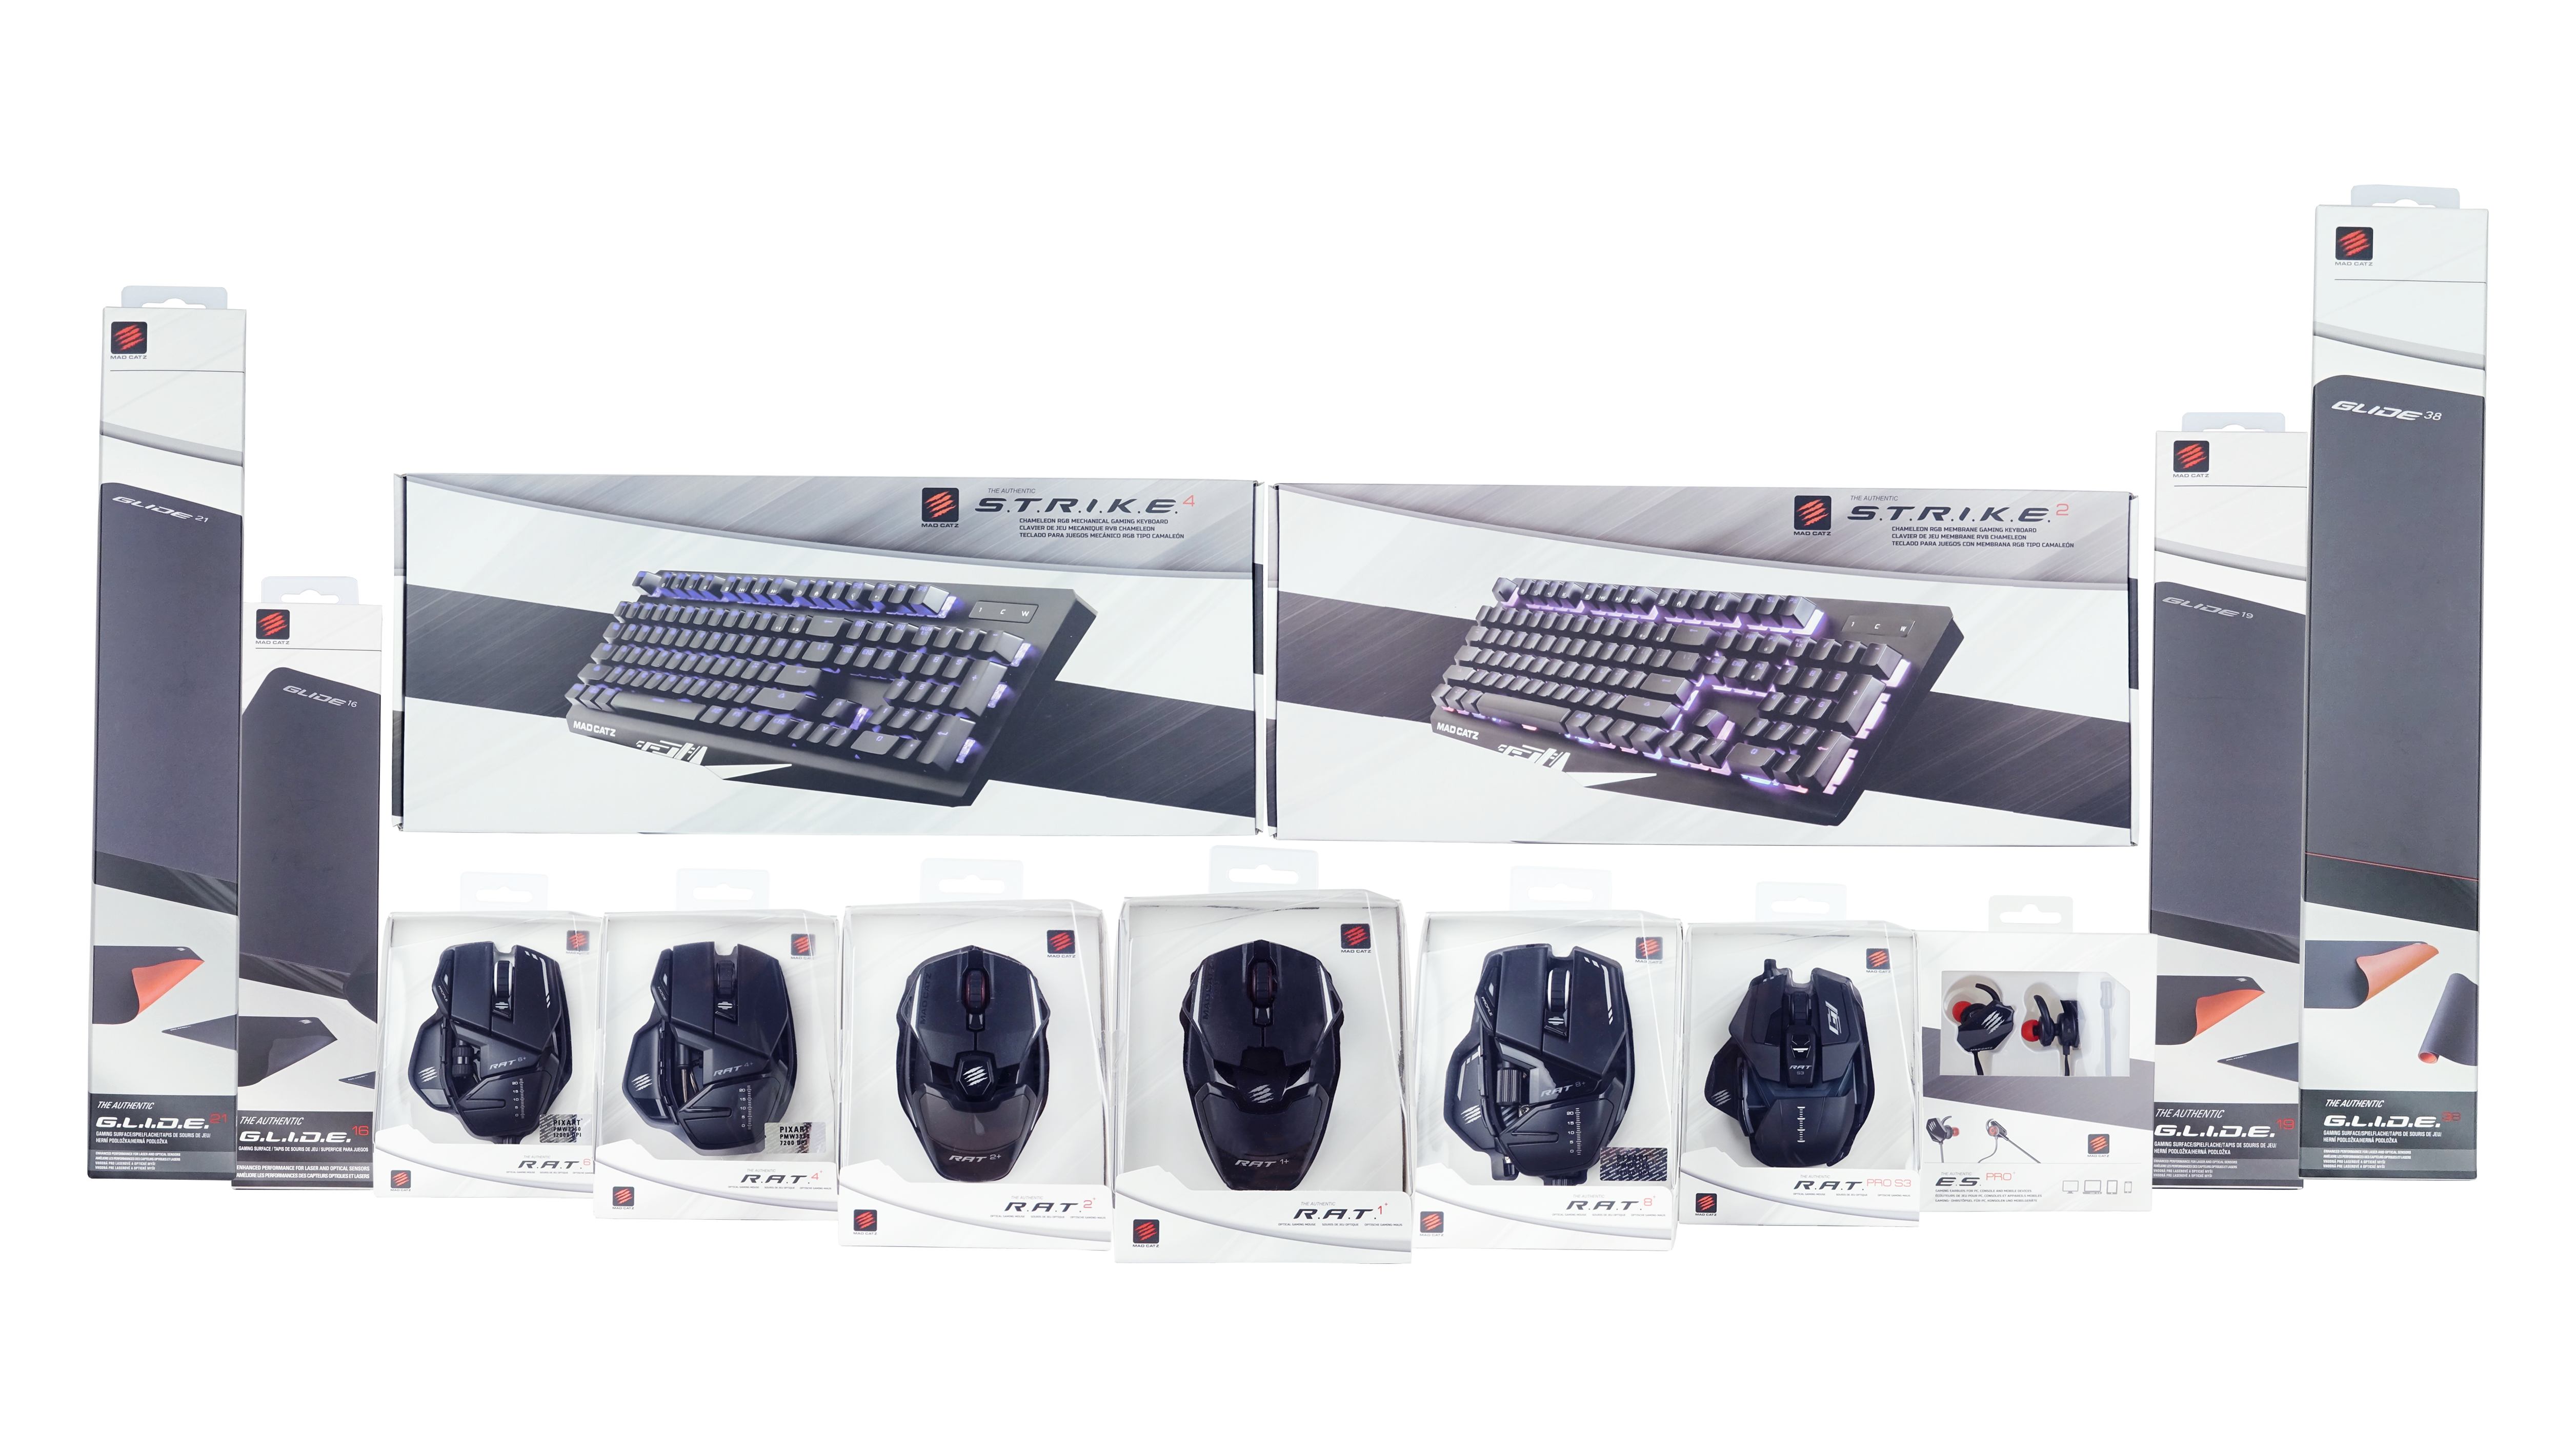 Mad Catz full product range including the S.T.R.I.K.E. keyboards